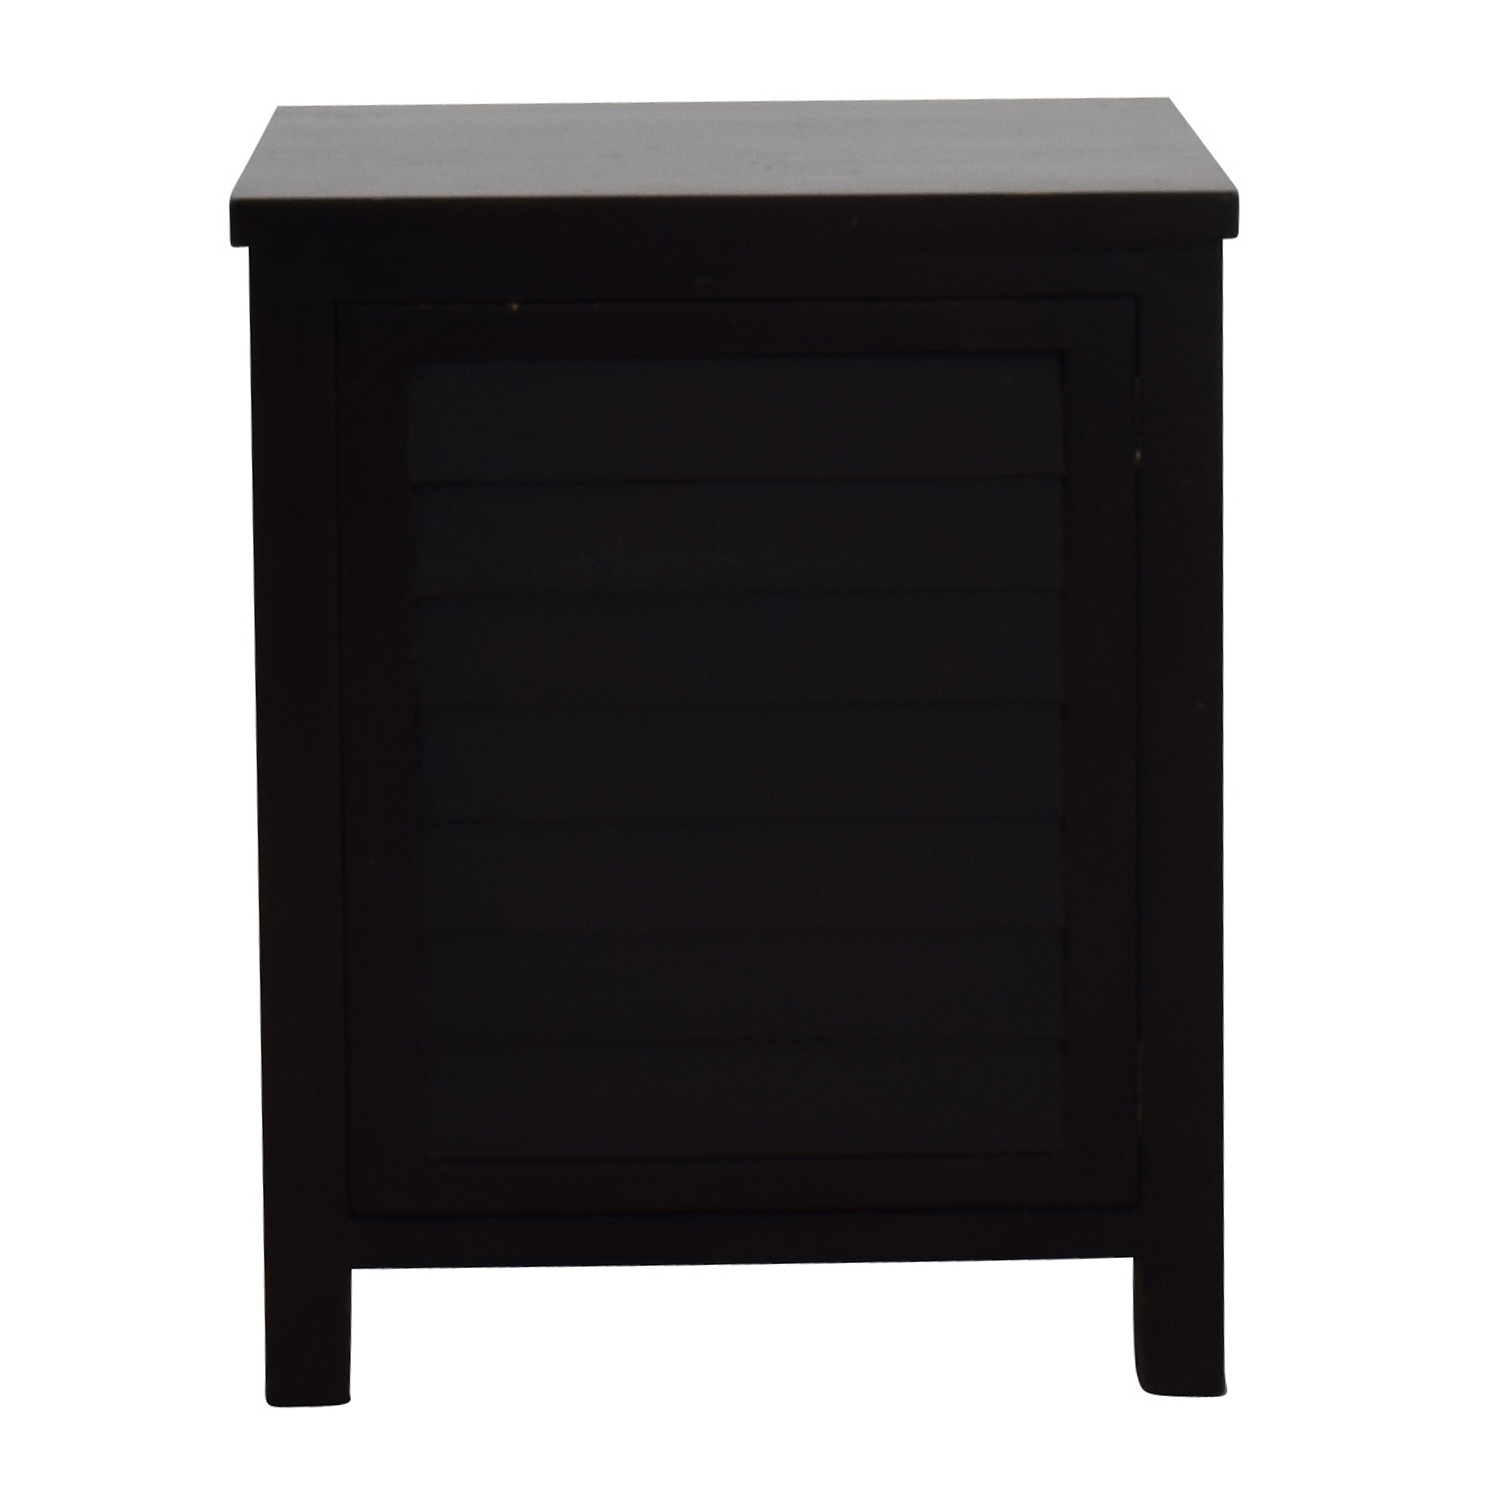 OFF Crate & Barrel Crate & Barrel Side Table with Storage